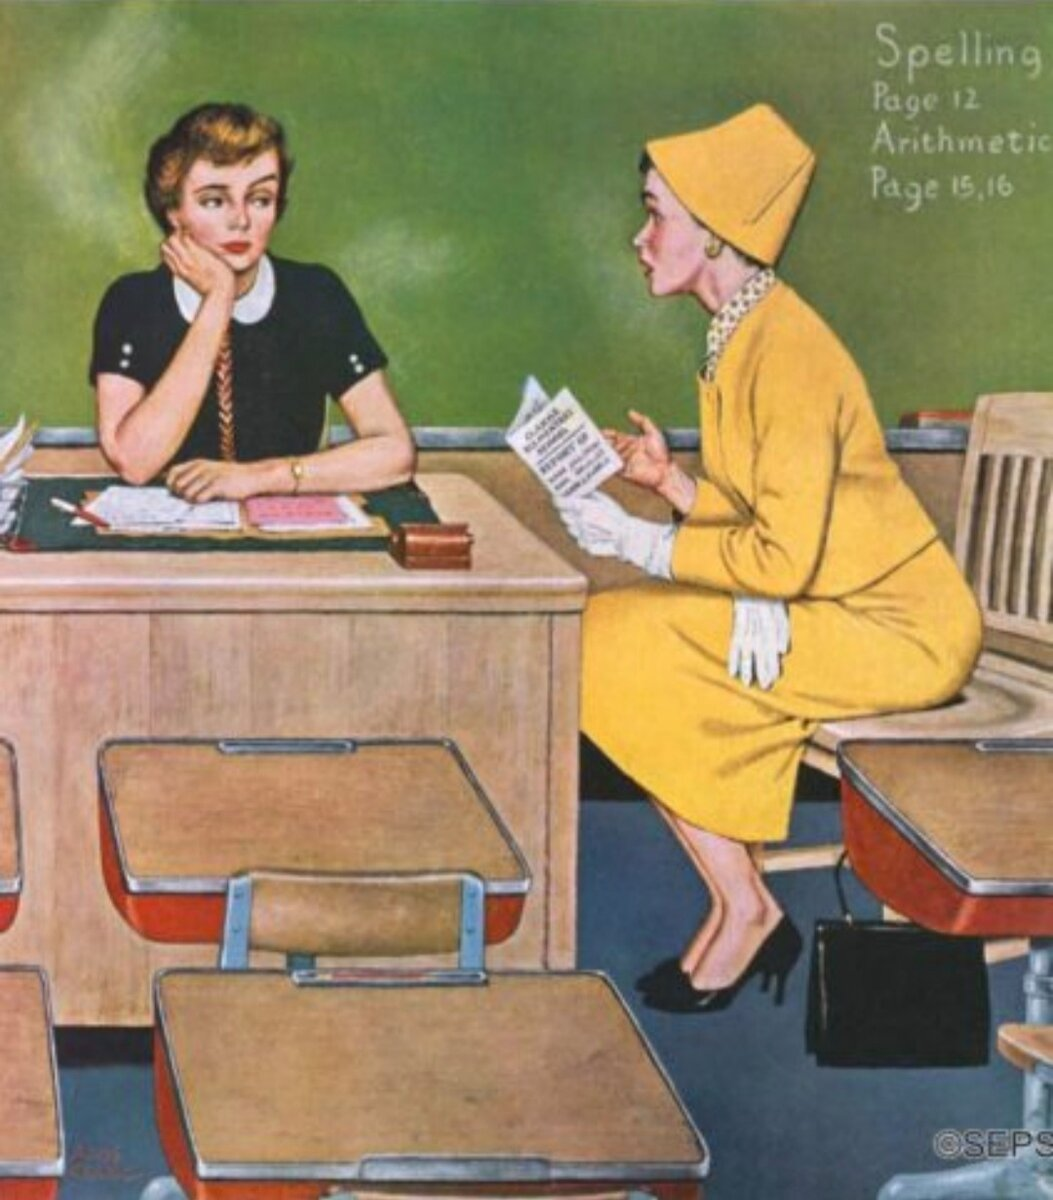 """""""Parent - Teacher Conference"""", December 12, 1959 by Amos Sewell,  фото из архива The Saturday Evening Post Amos Sewell Archives 